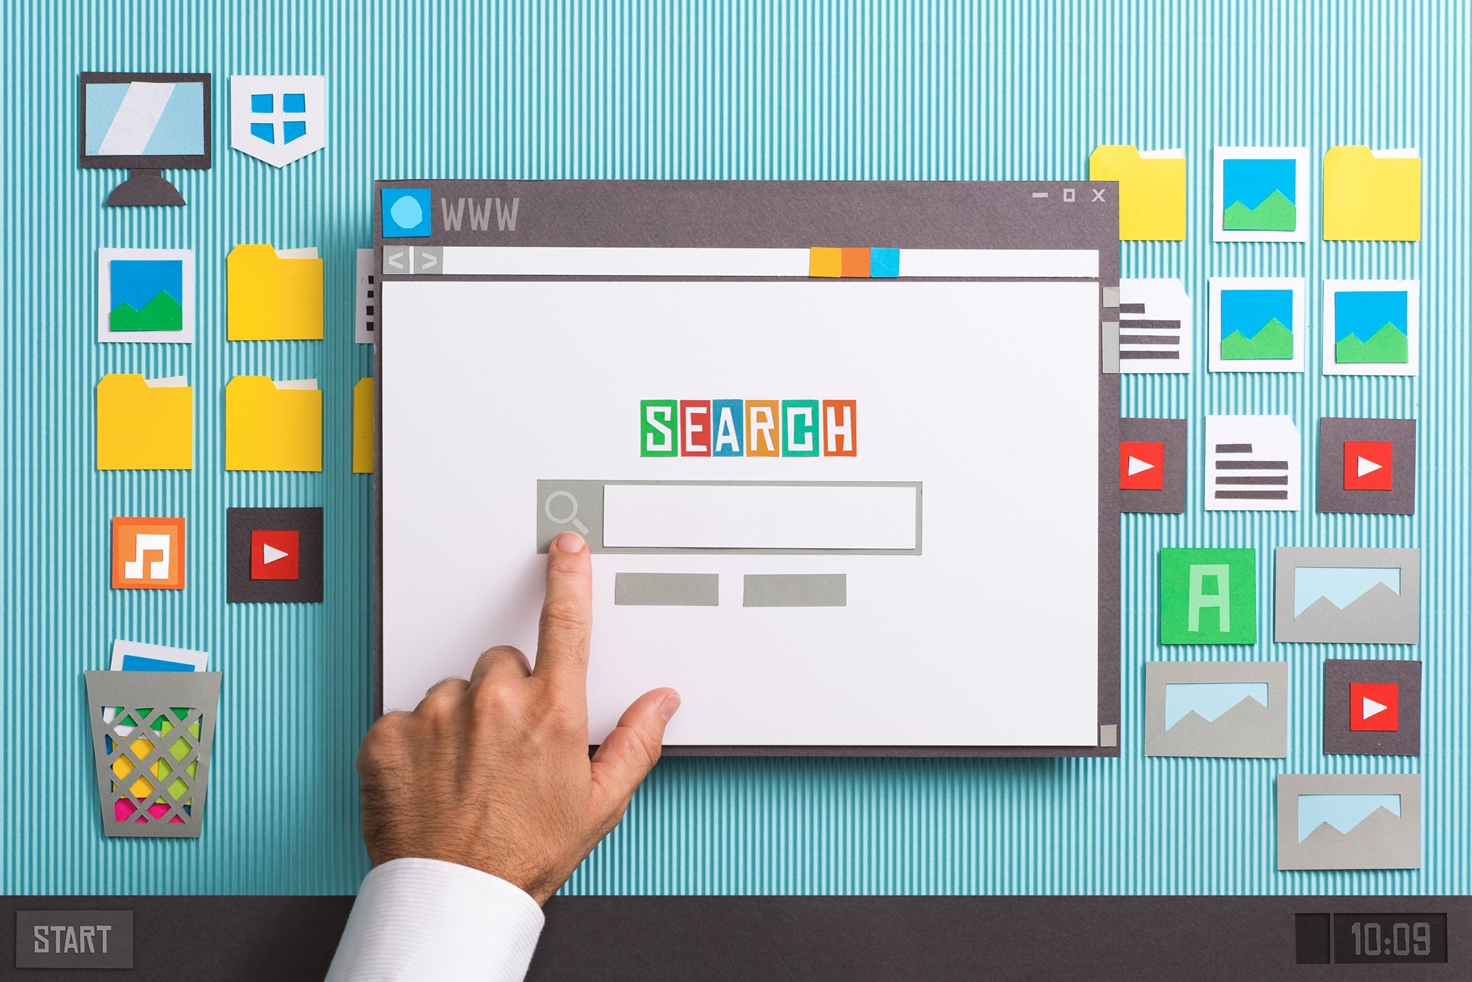 Search engine home page - Geeky